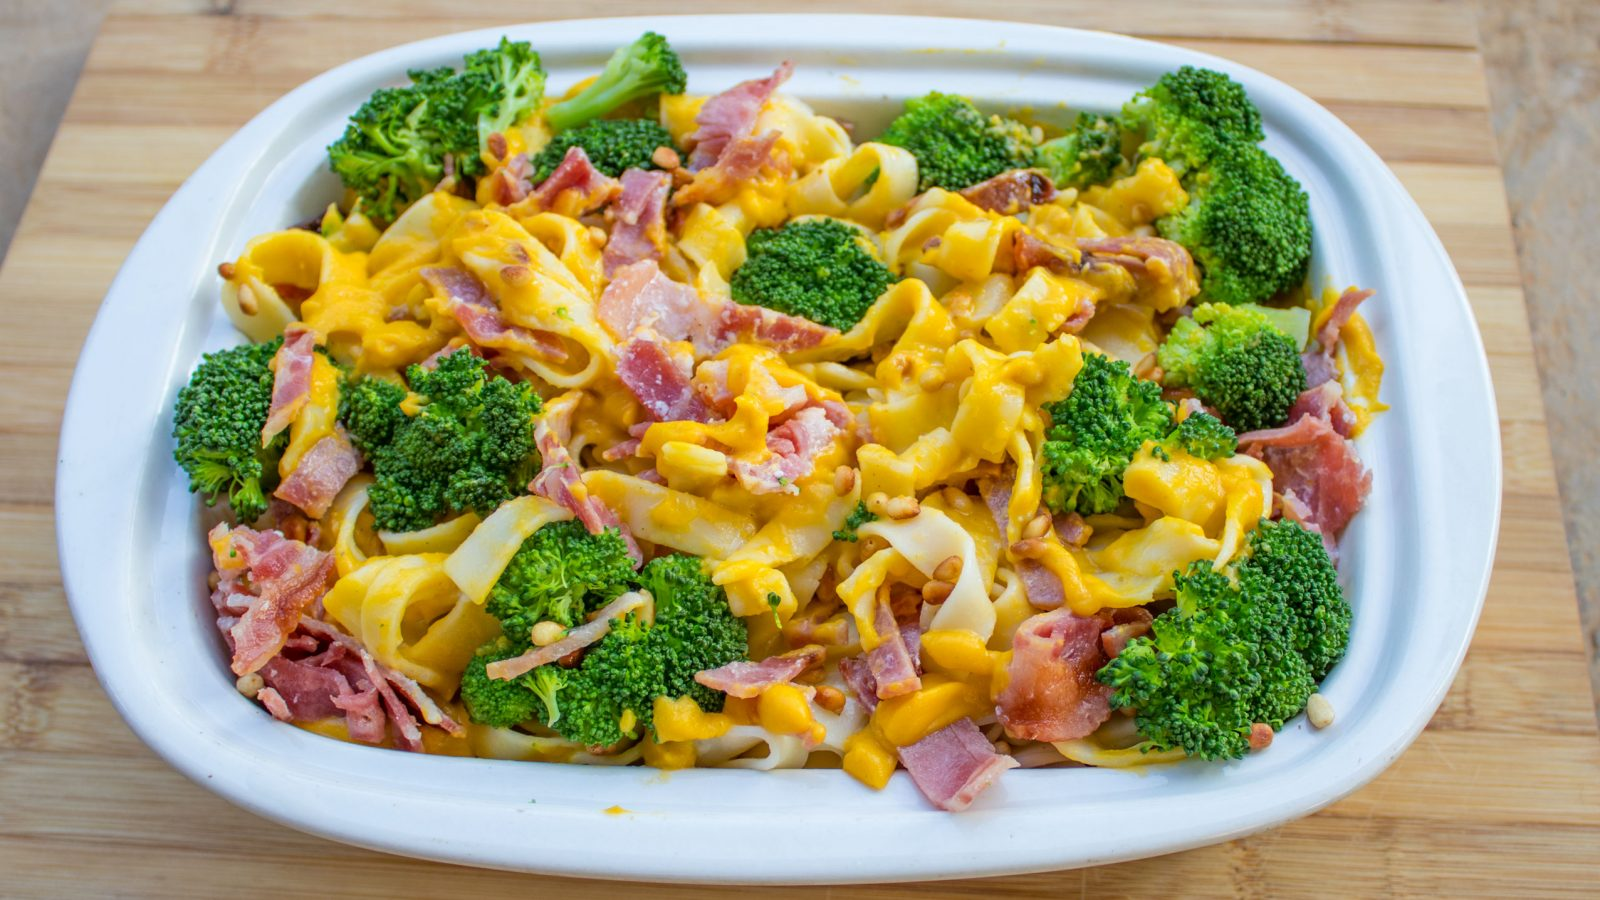 Pasta in a butternut and coconut milk sauce, with broccoli and bacon